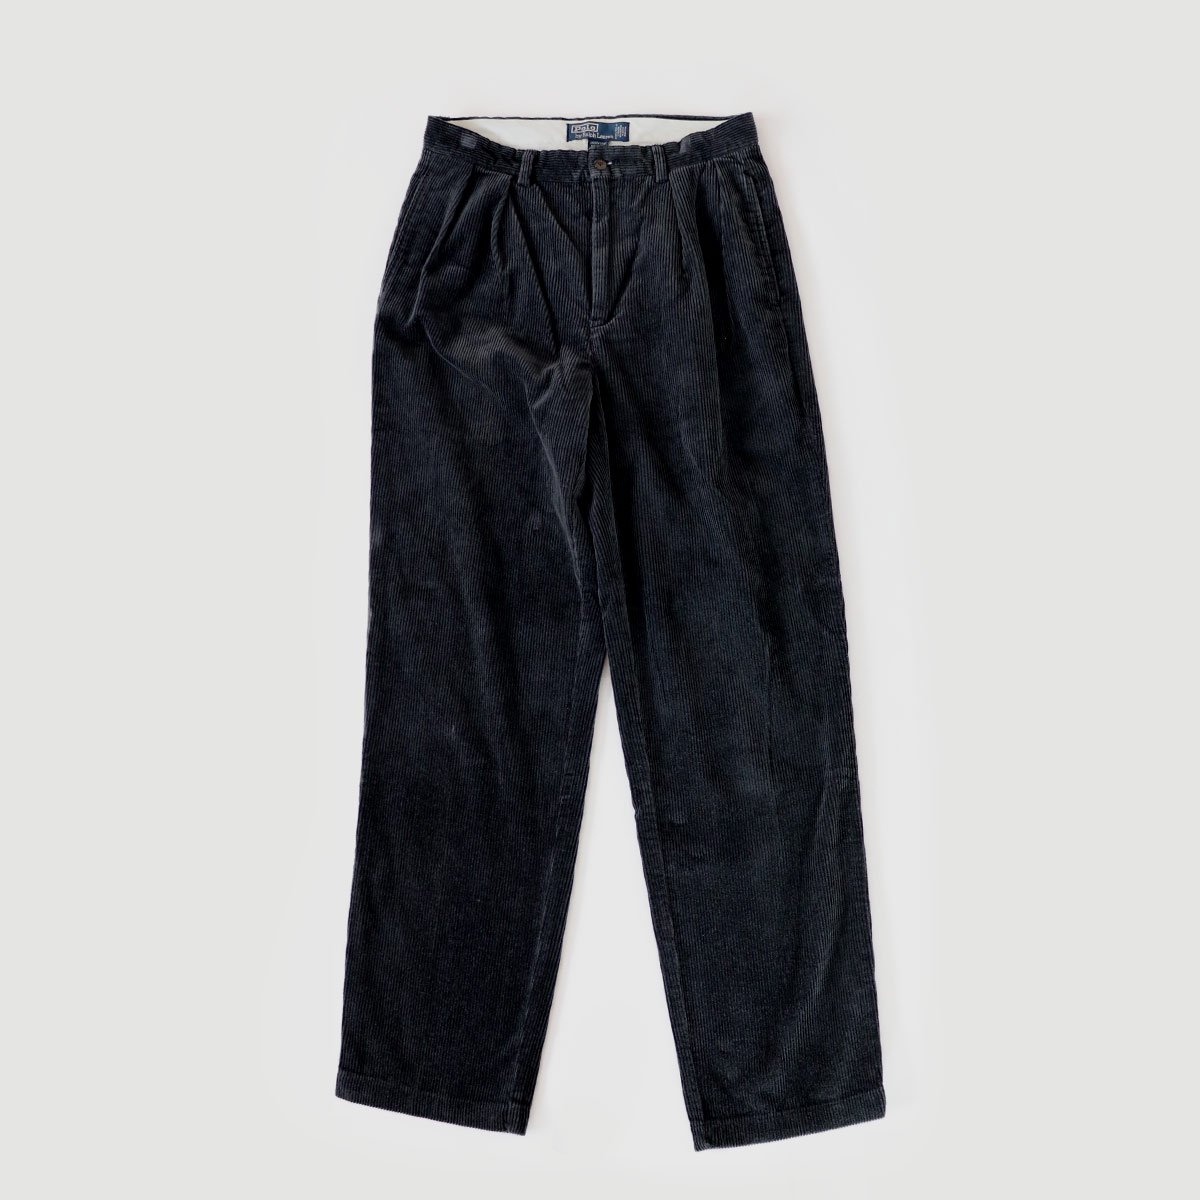 POLO RALPH LAUREN CORDUROY PANTS 詳細画像1